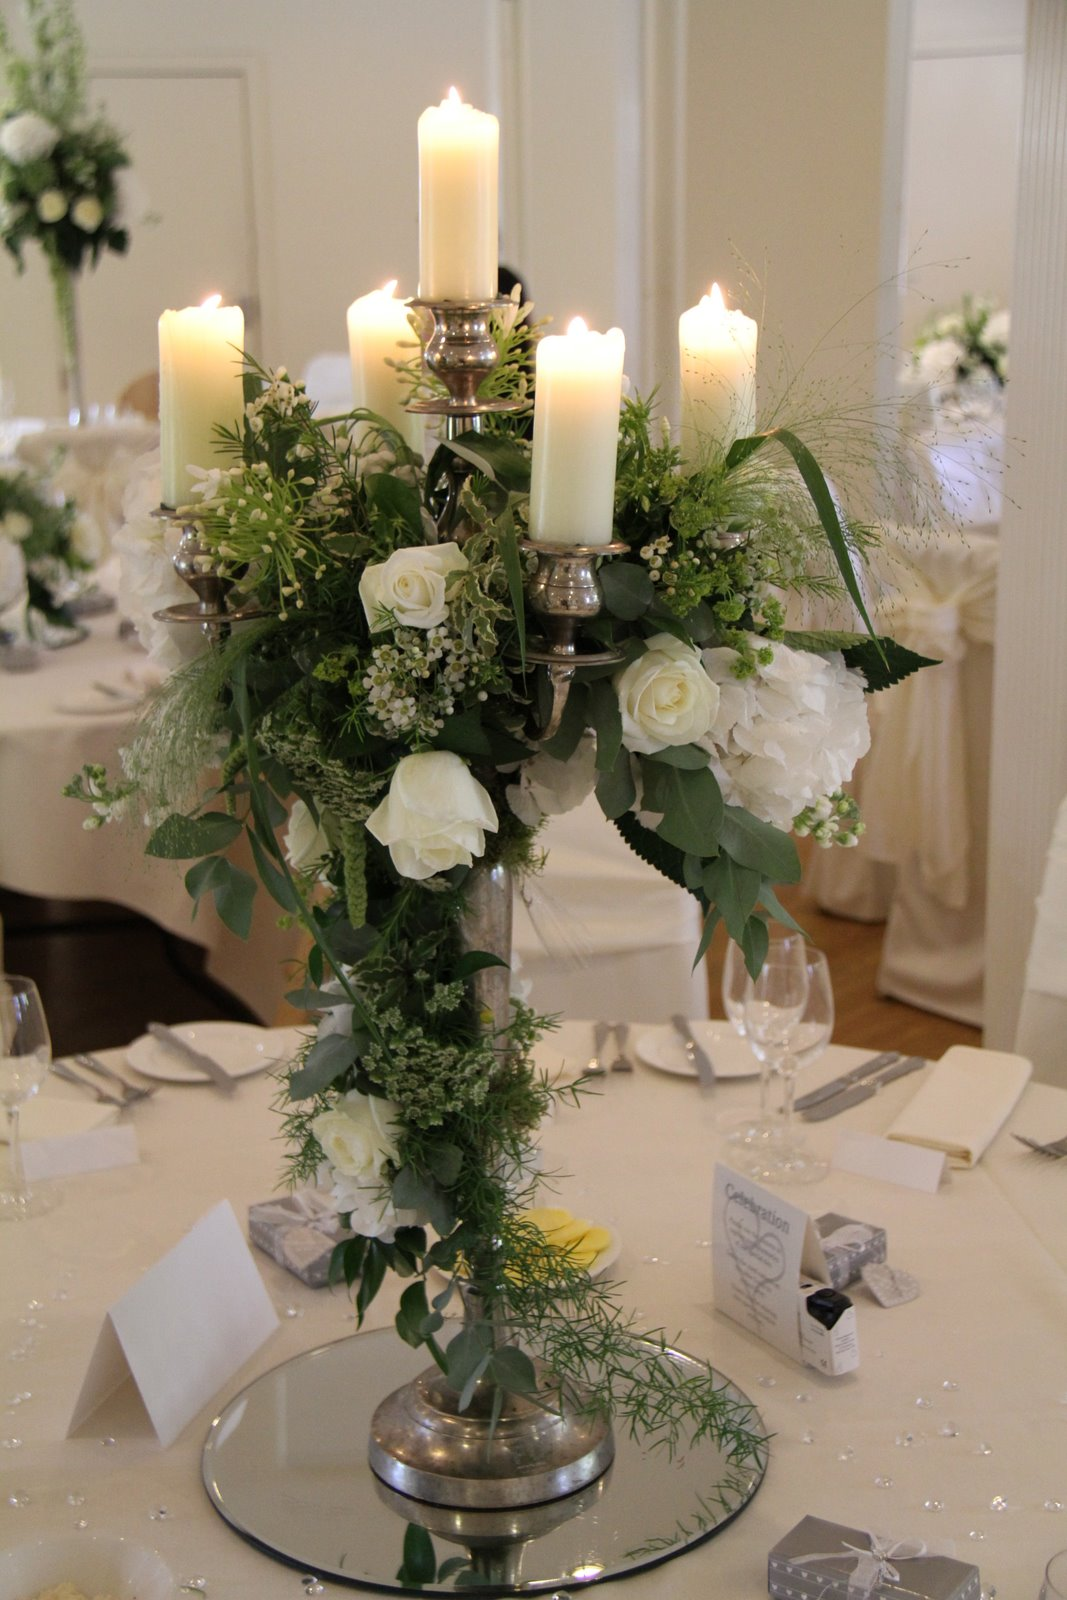 Flower Design Table Centrepieces: Baroque Style Candelabras